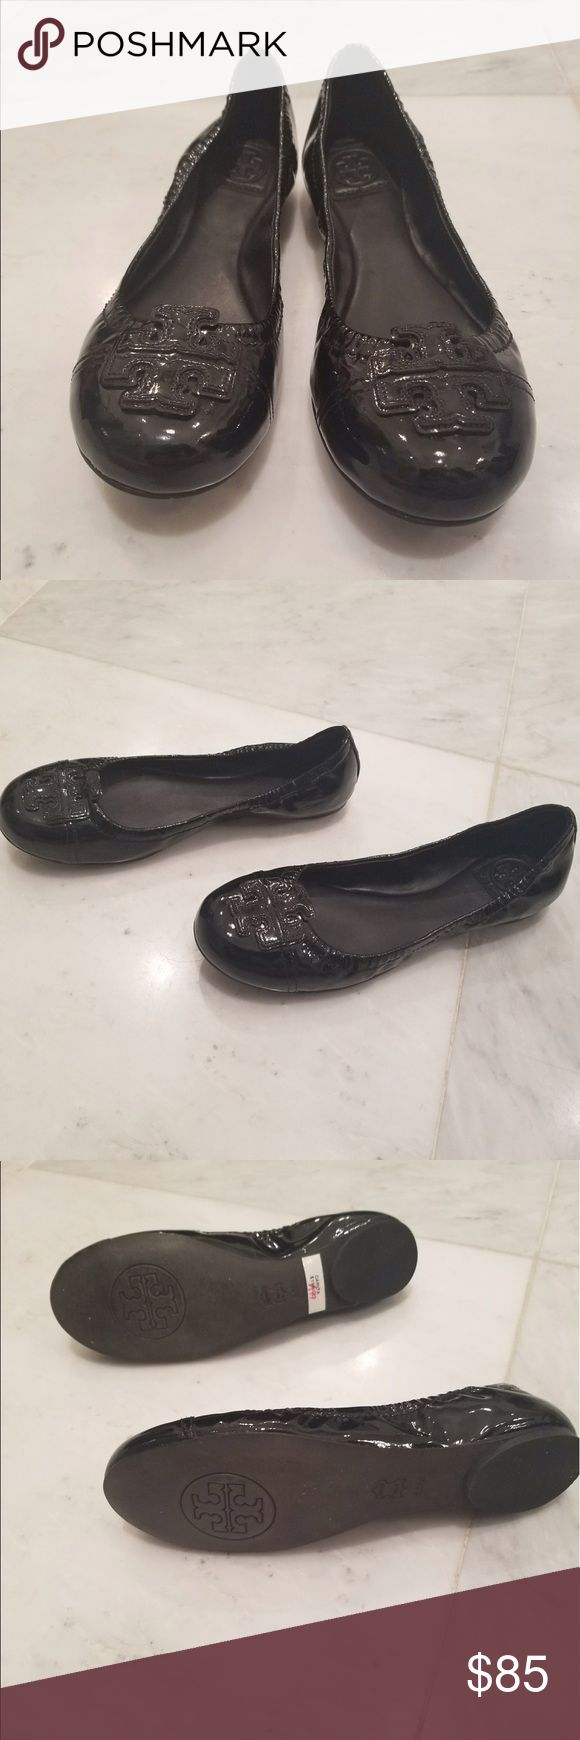 Tory Burch Flats brand new! Black Tory Burch Flats never been worn. Still have price tag on them. Purchased them from the Tory Burch store. Tory Burch Shoes Flats & Loafers